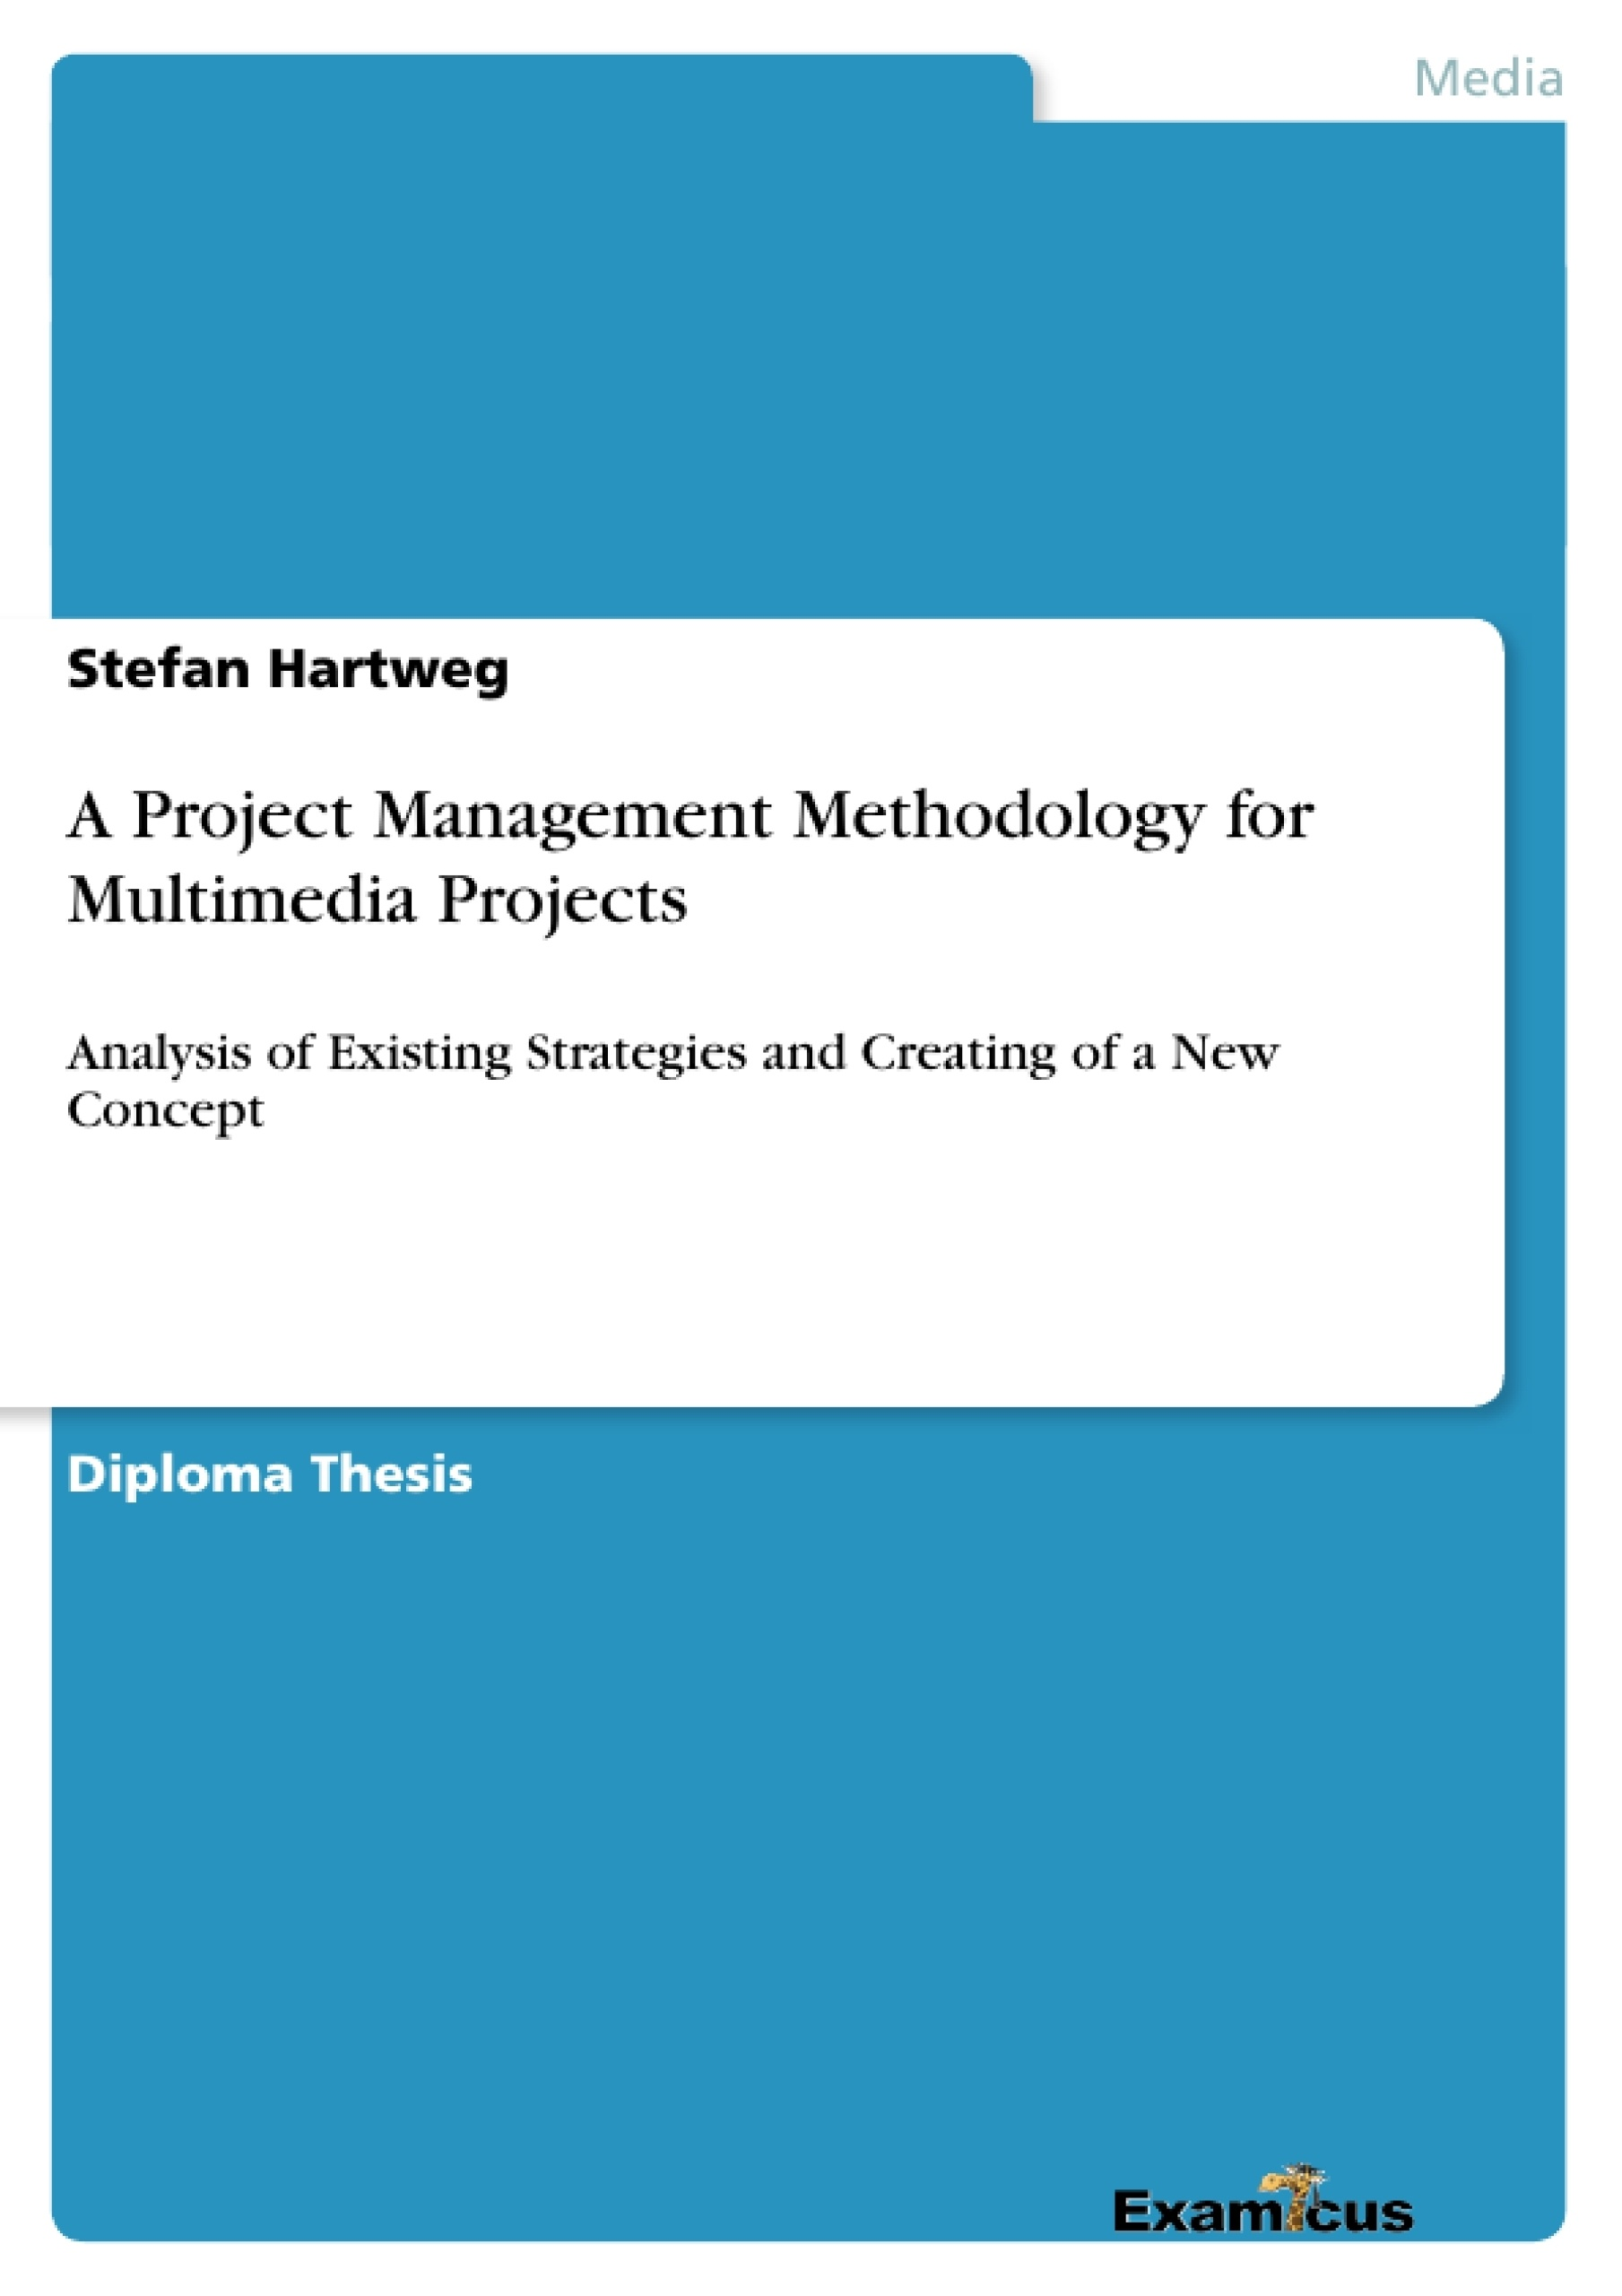 Title: A Project Management Methodology for Multimedia Projects